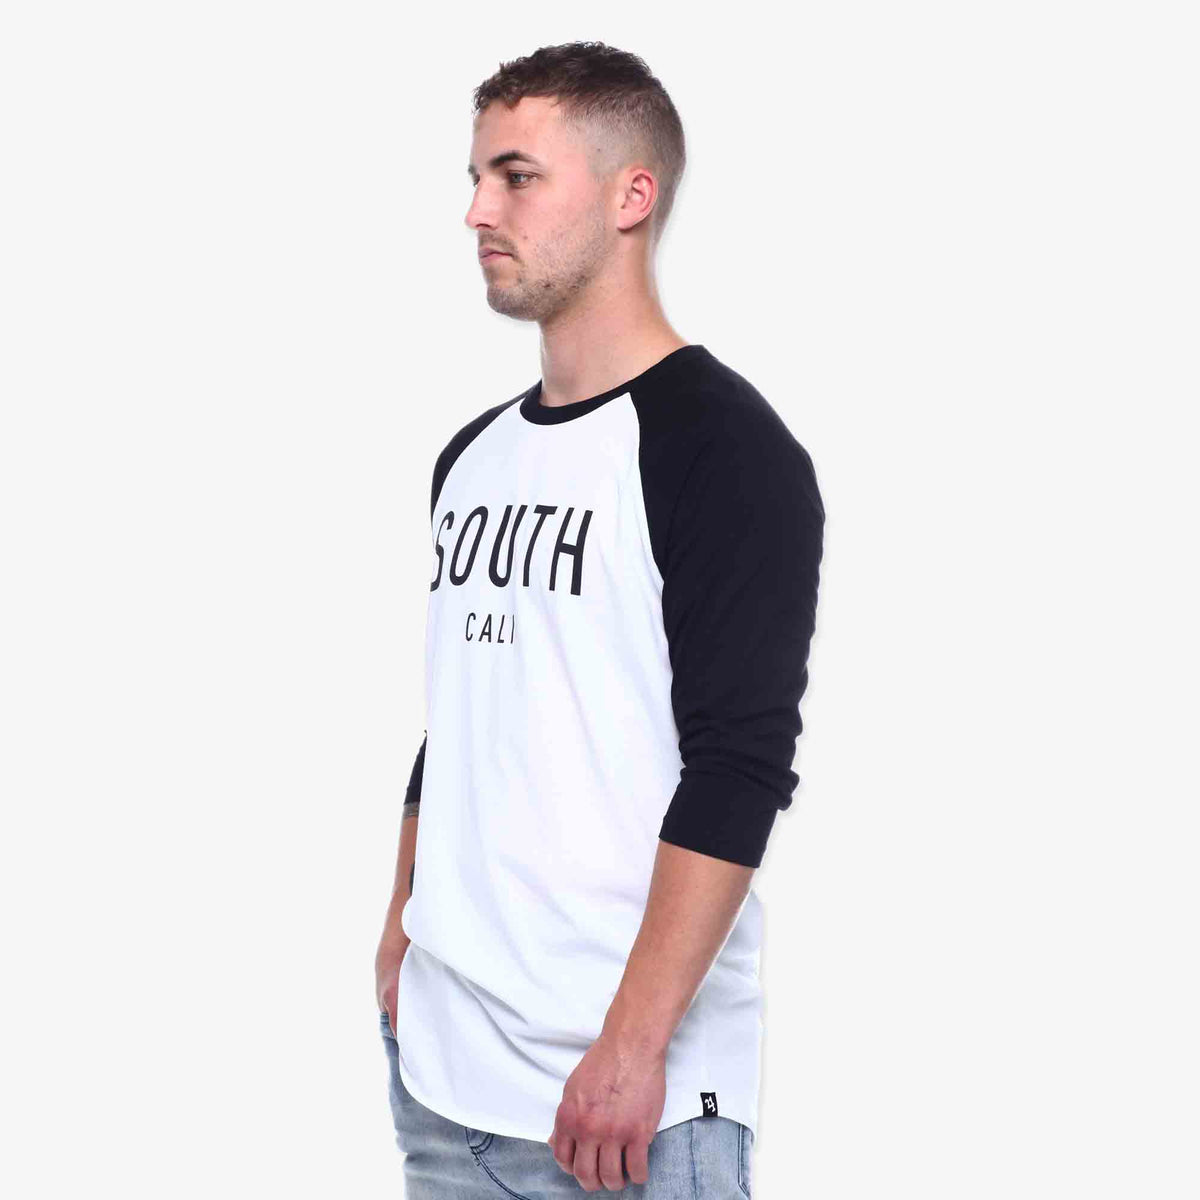 South Cali 3/4 Sleeve Tee - White & Black